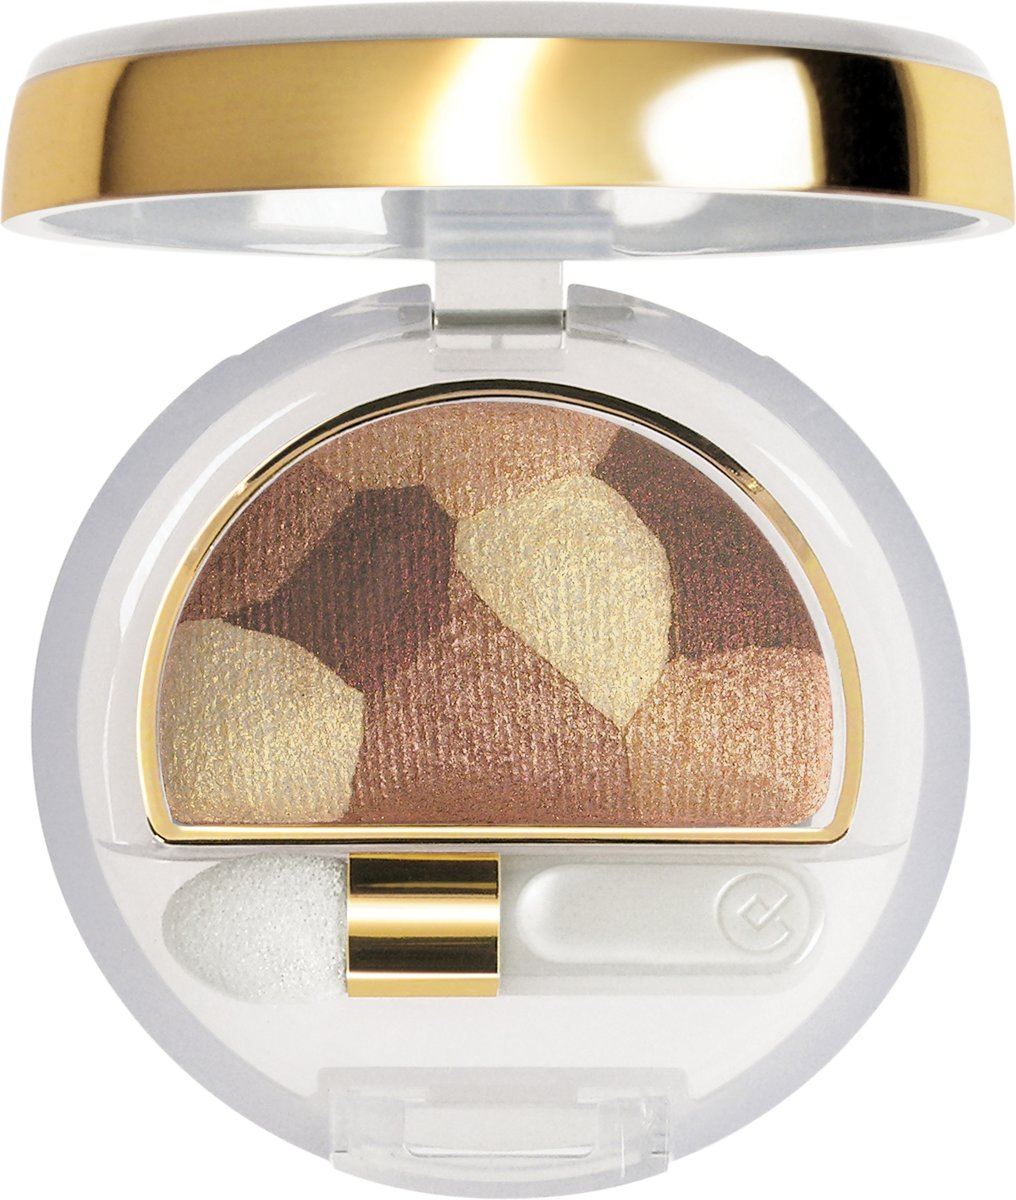 Collistar Double Effect Wet & Dry Eyeshadow - 18 Patchwork Bronze - Oogschaduw